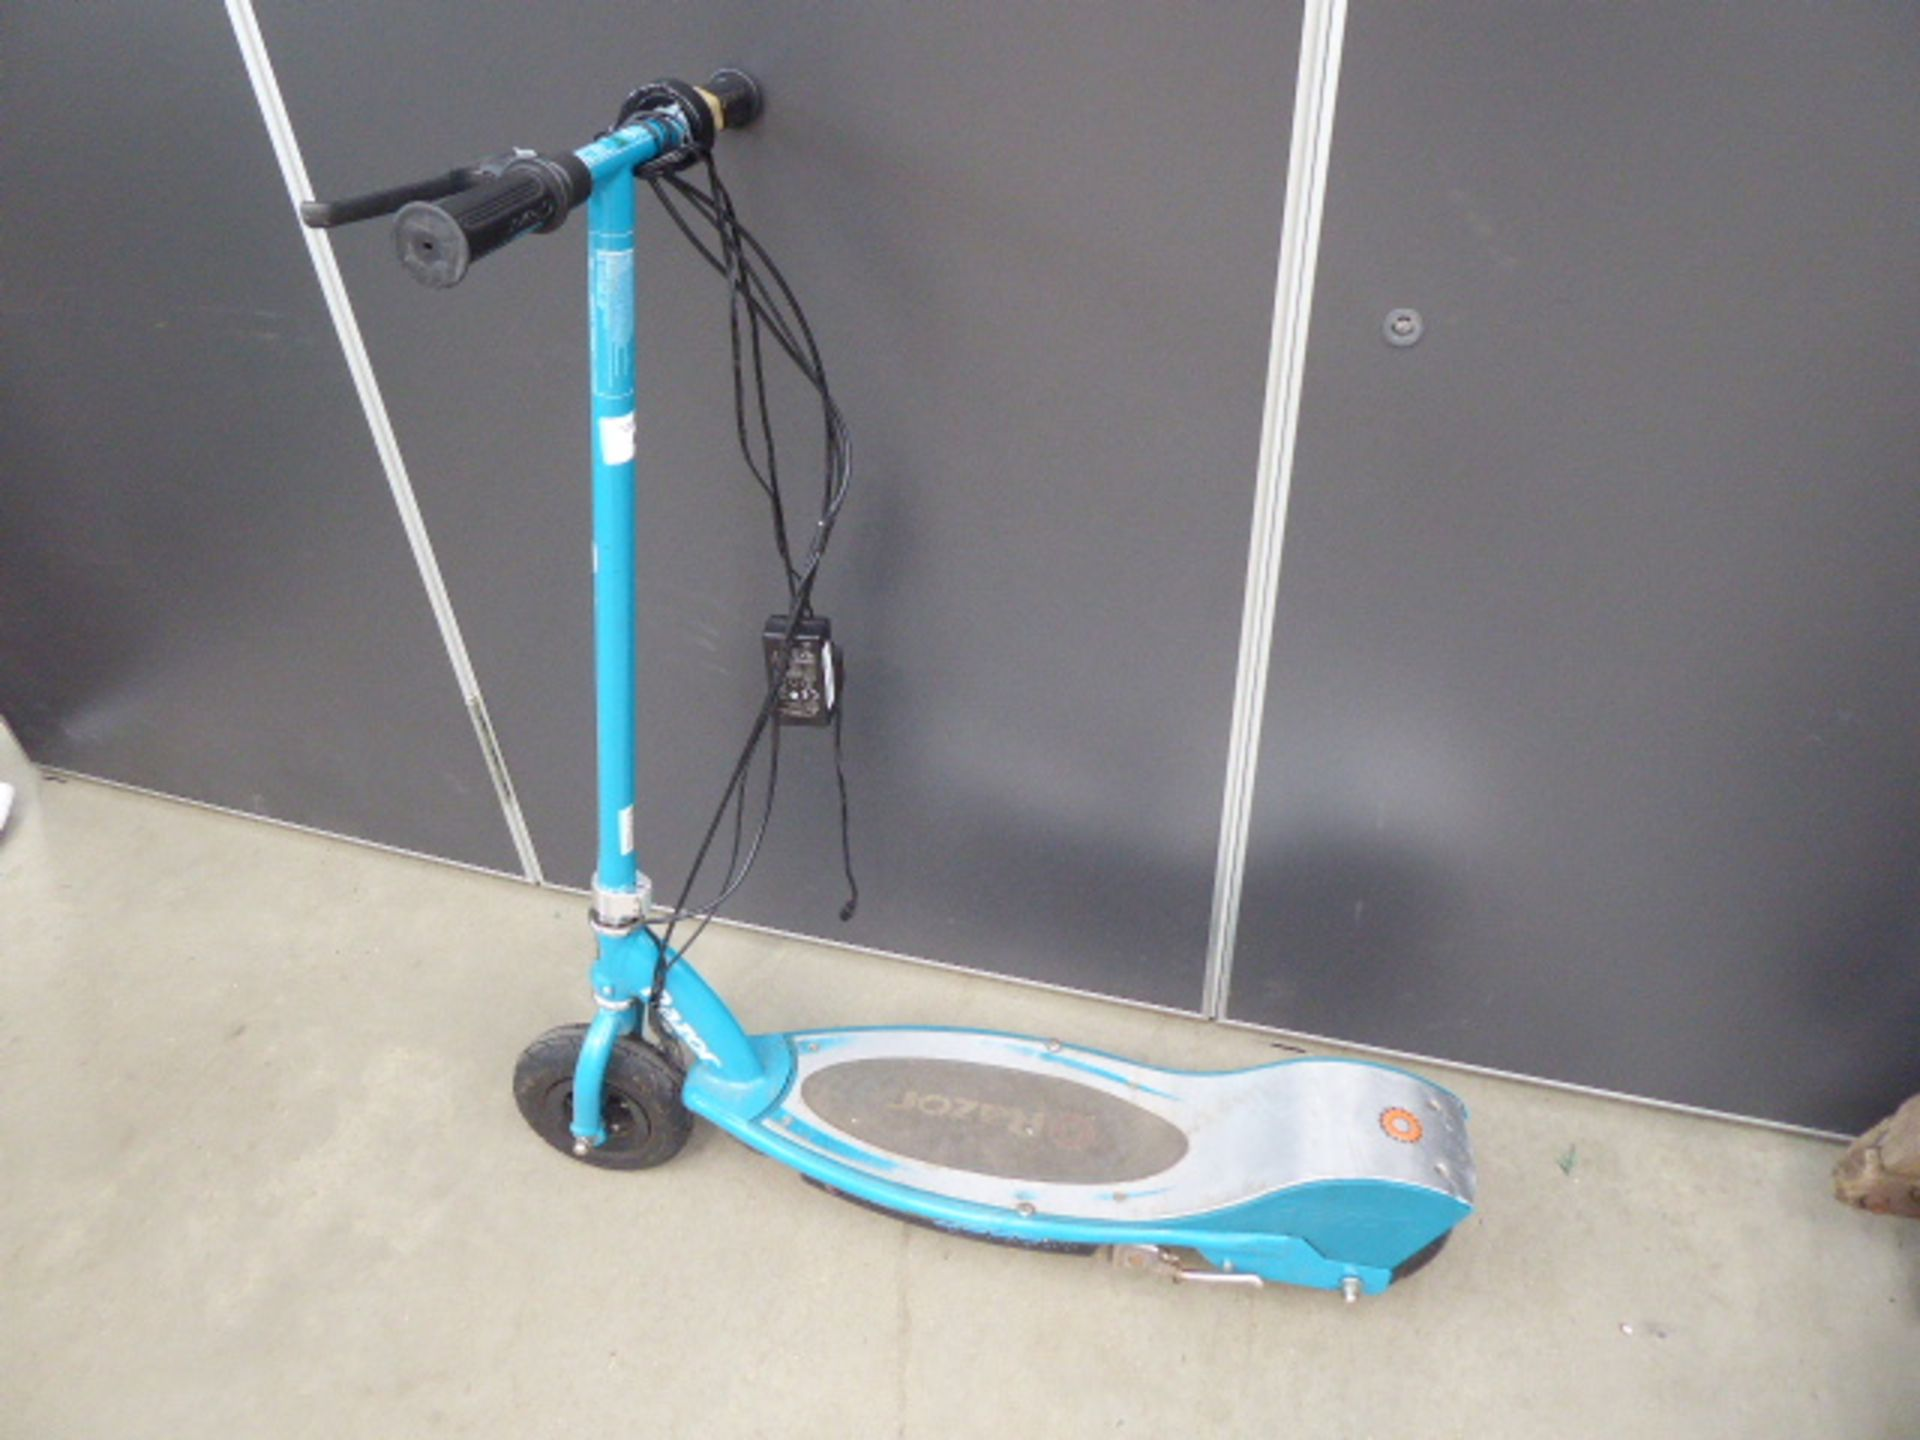 Lot 4291 - 4054 Green Razor electric scooter with charger